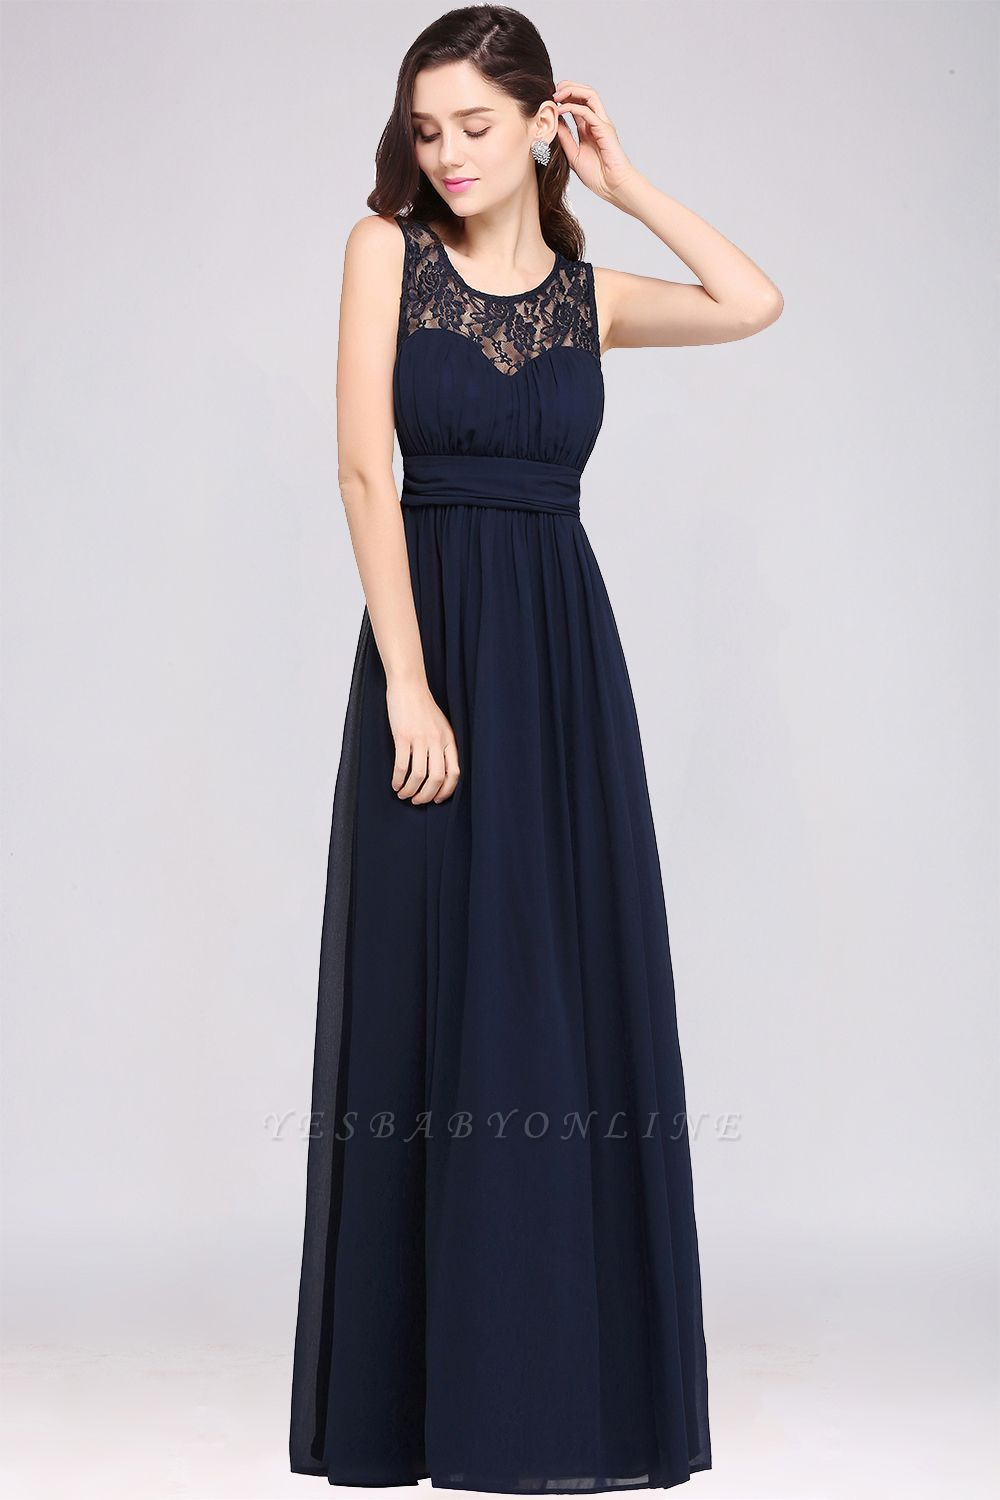 CHELSEA | Cheap Long Lace Prom Dress | Afforable Chiffon Lace Evening Dress